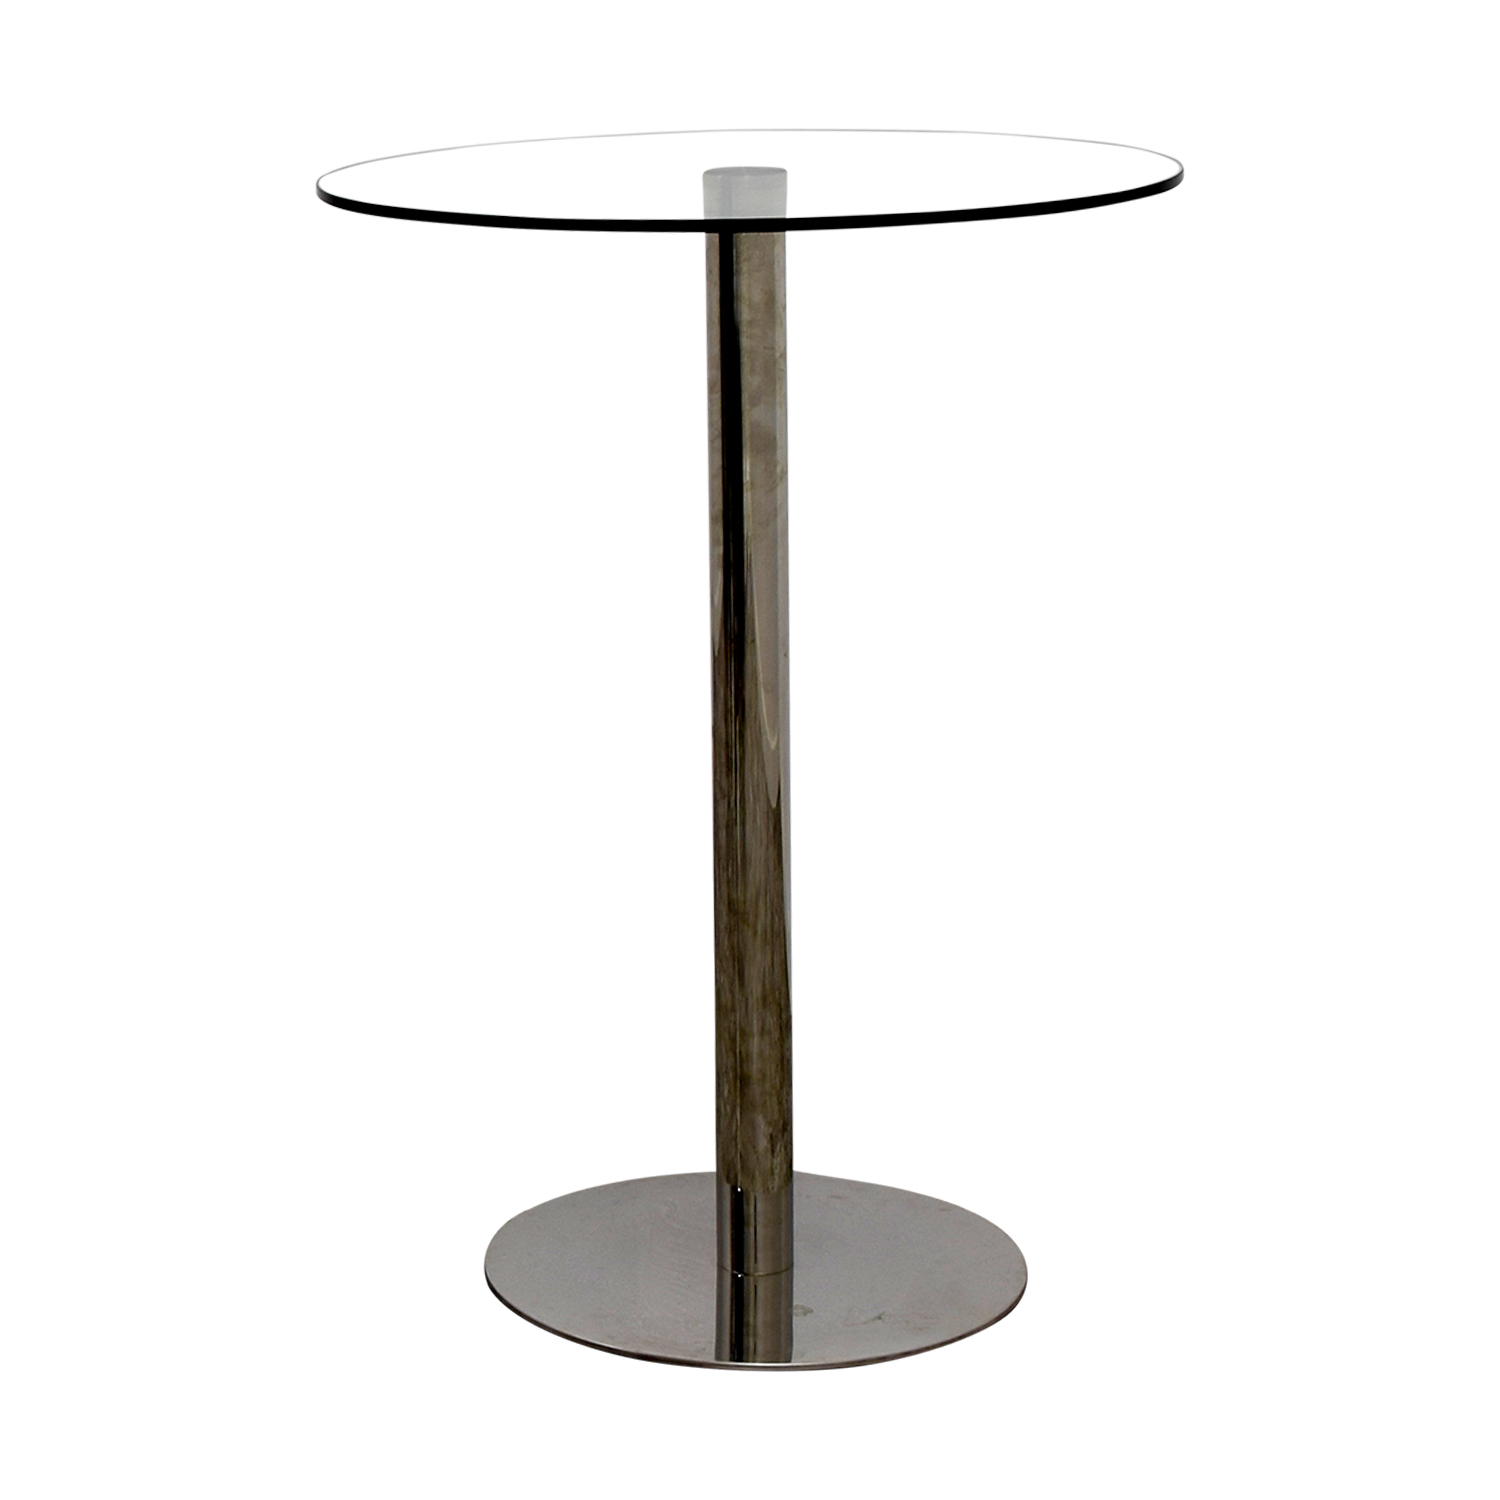 Modani Round Glass Bar Table / Tables